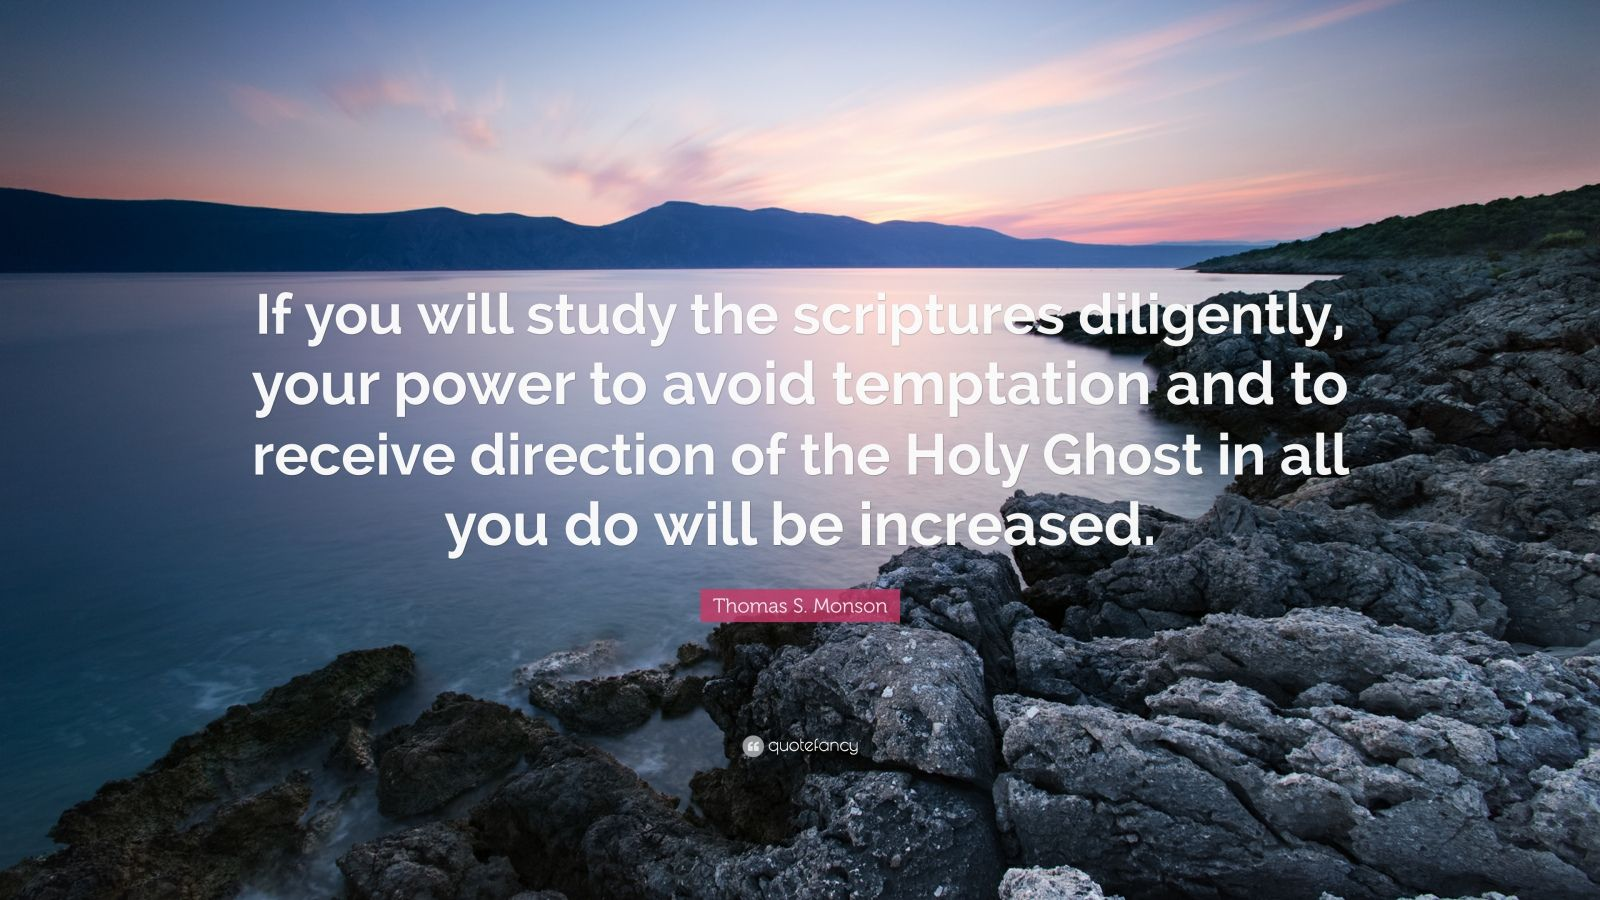 "Thomas S. Monson Quote: ""If you will study the scriptures diligently, your power to avoid temptation and to receive direction of the Holy Ghost in all you do will be increased."""